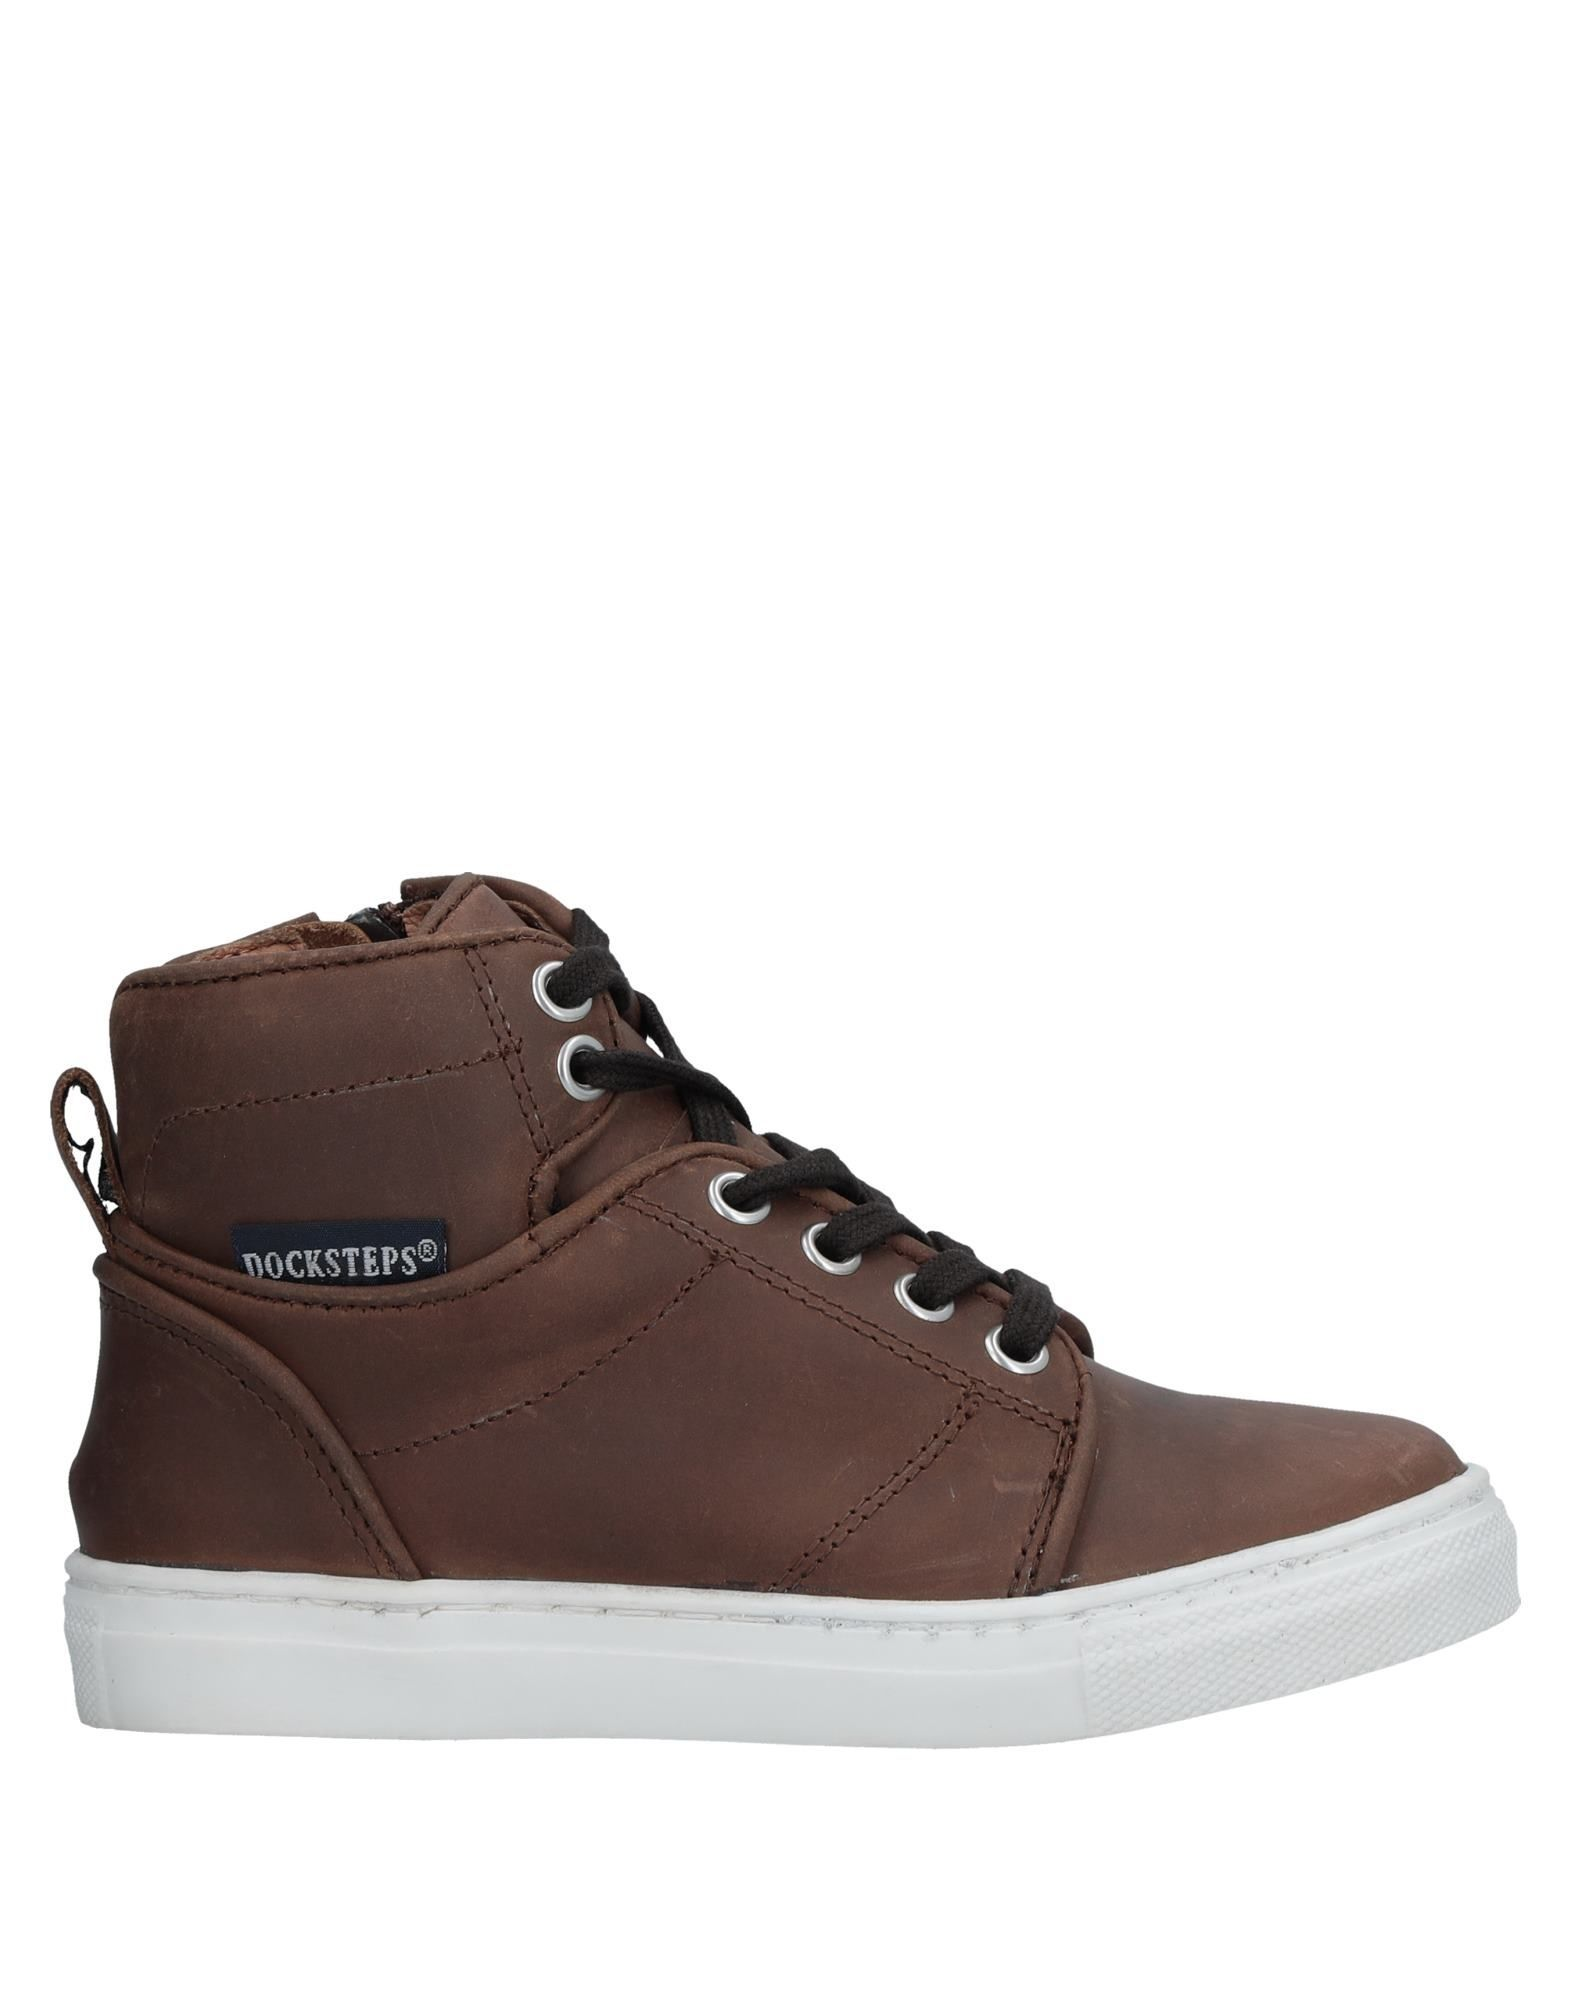 Docksteps Cocoa Boys Leather Shoes